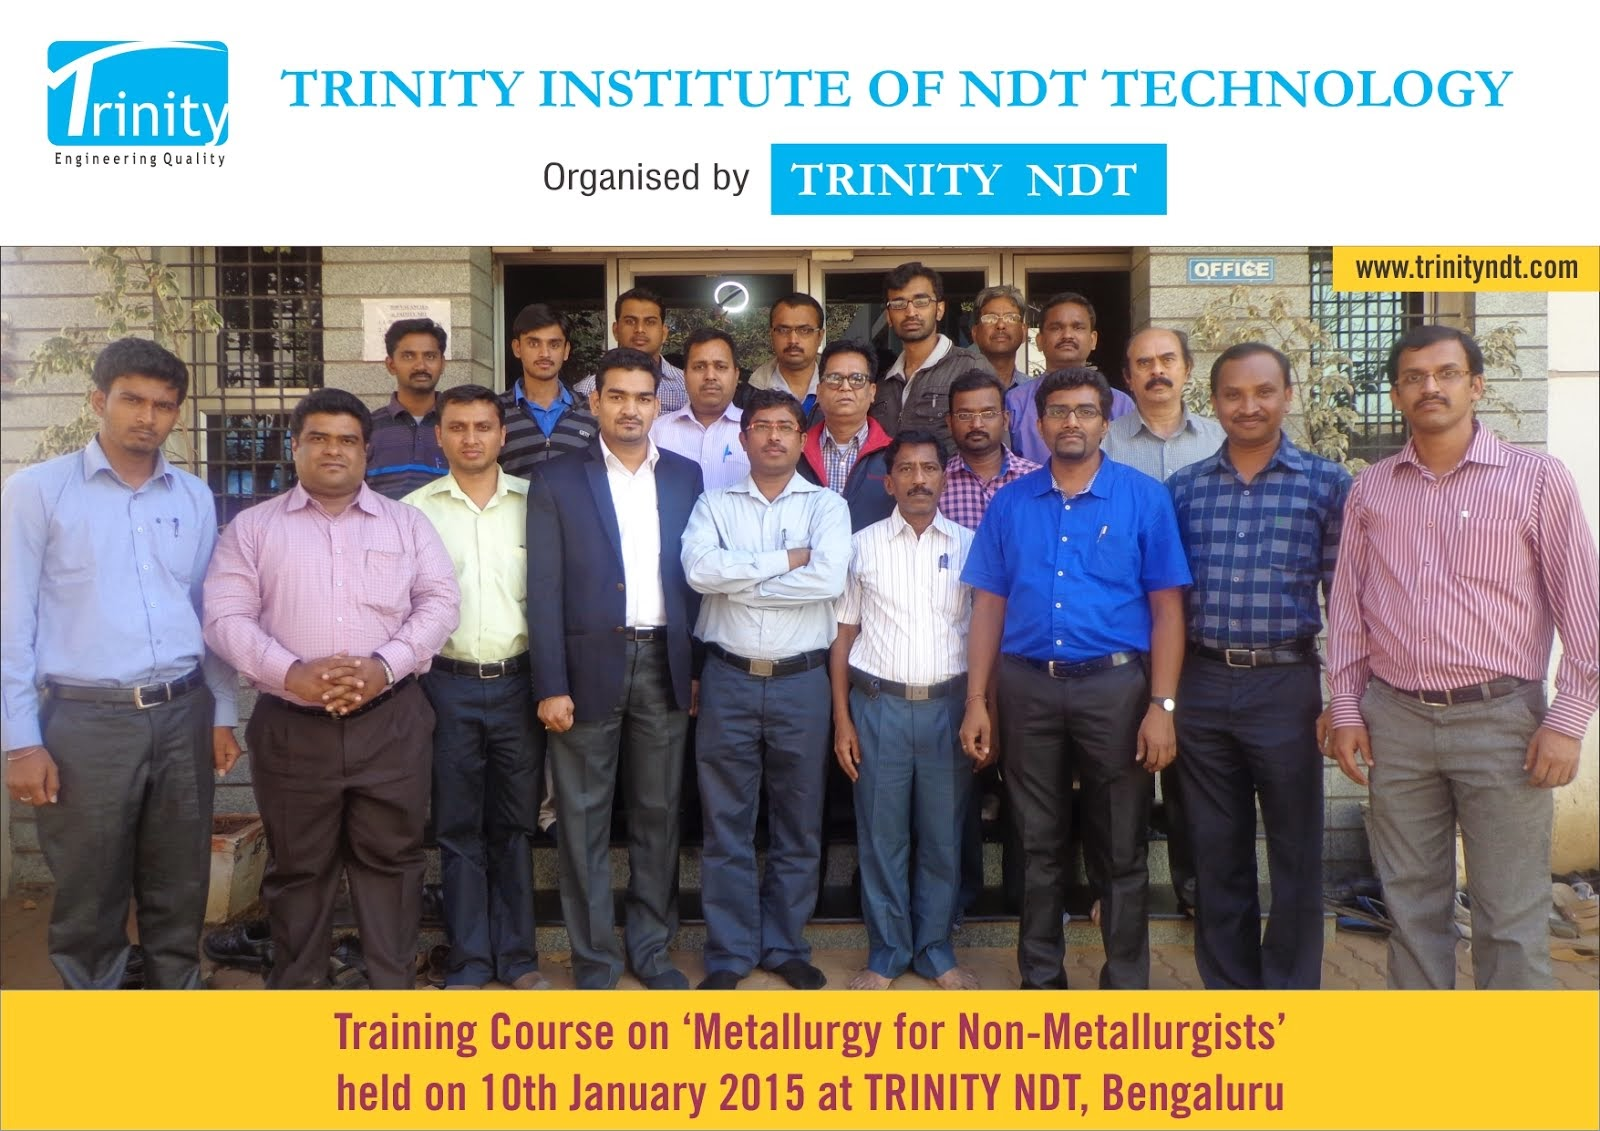 Recently held course on Metallurgy for Non metallurgists on 10th Jan 2015 at Bengaluru - India